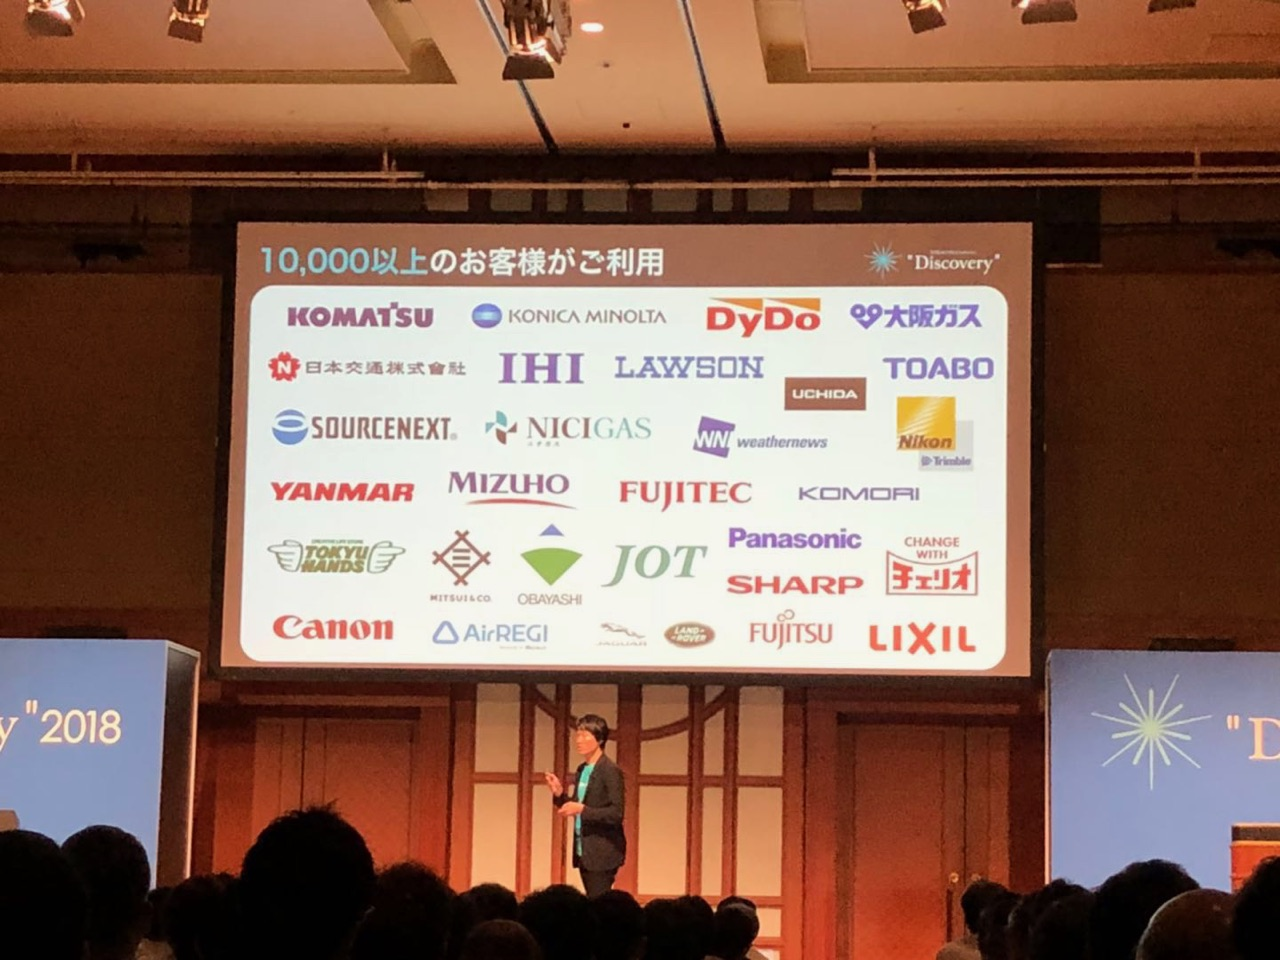 """SORACOM Conference """"Discovery""""2018に参加いたしました。"""